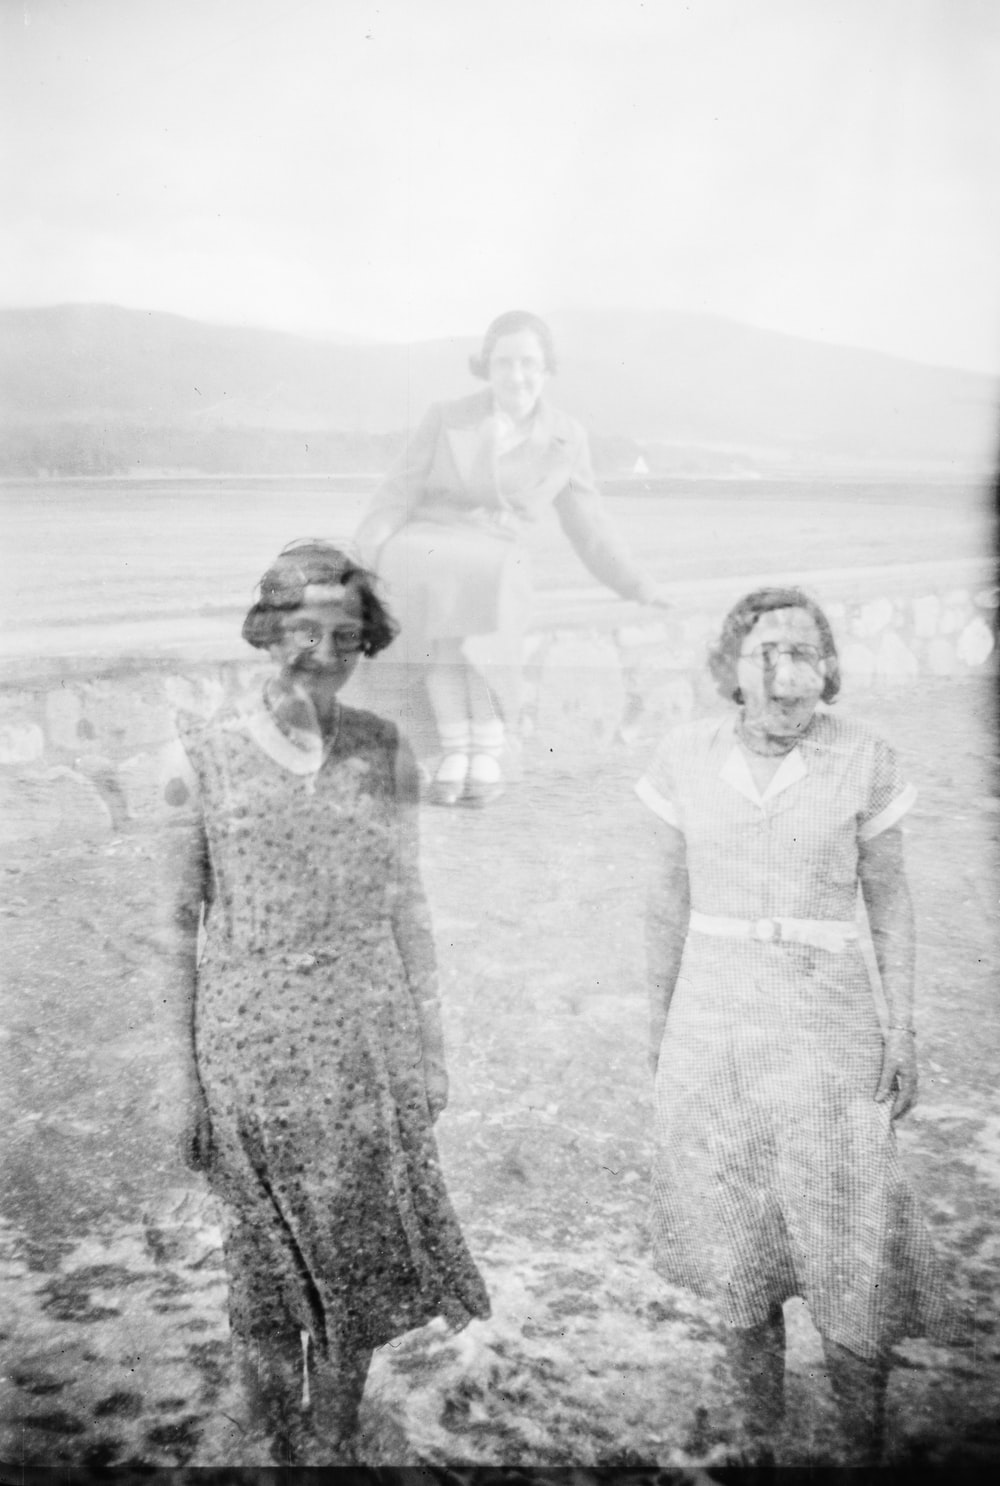 grayscale photo of three women